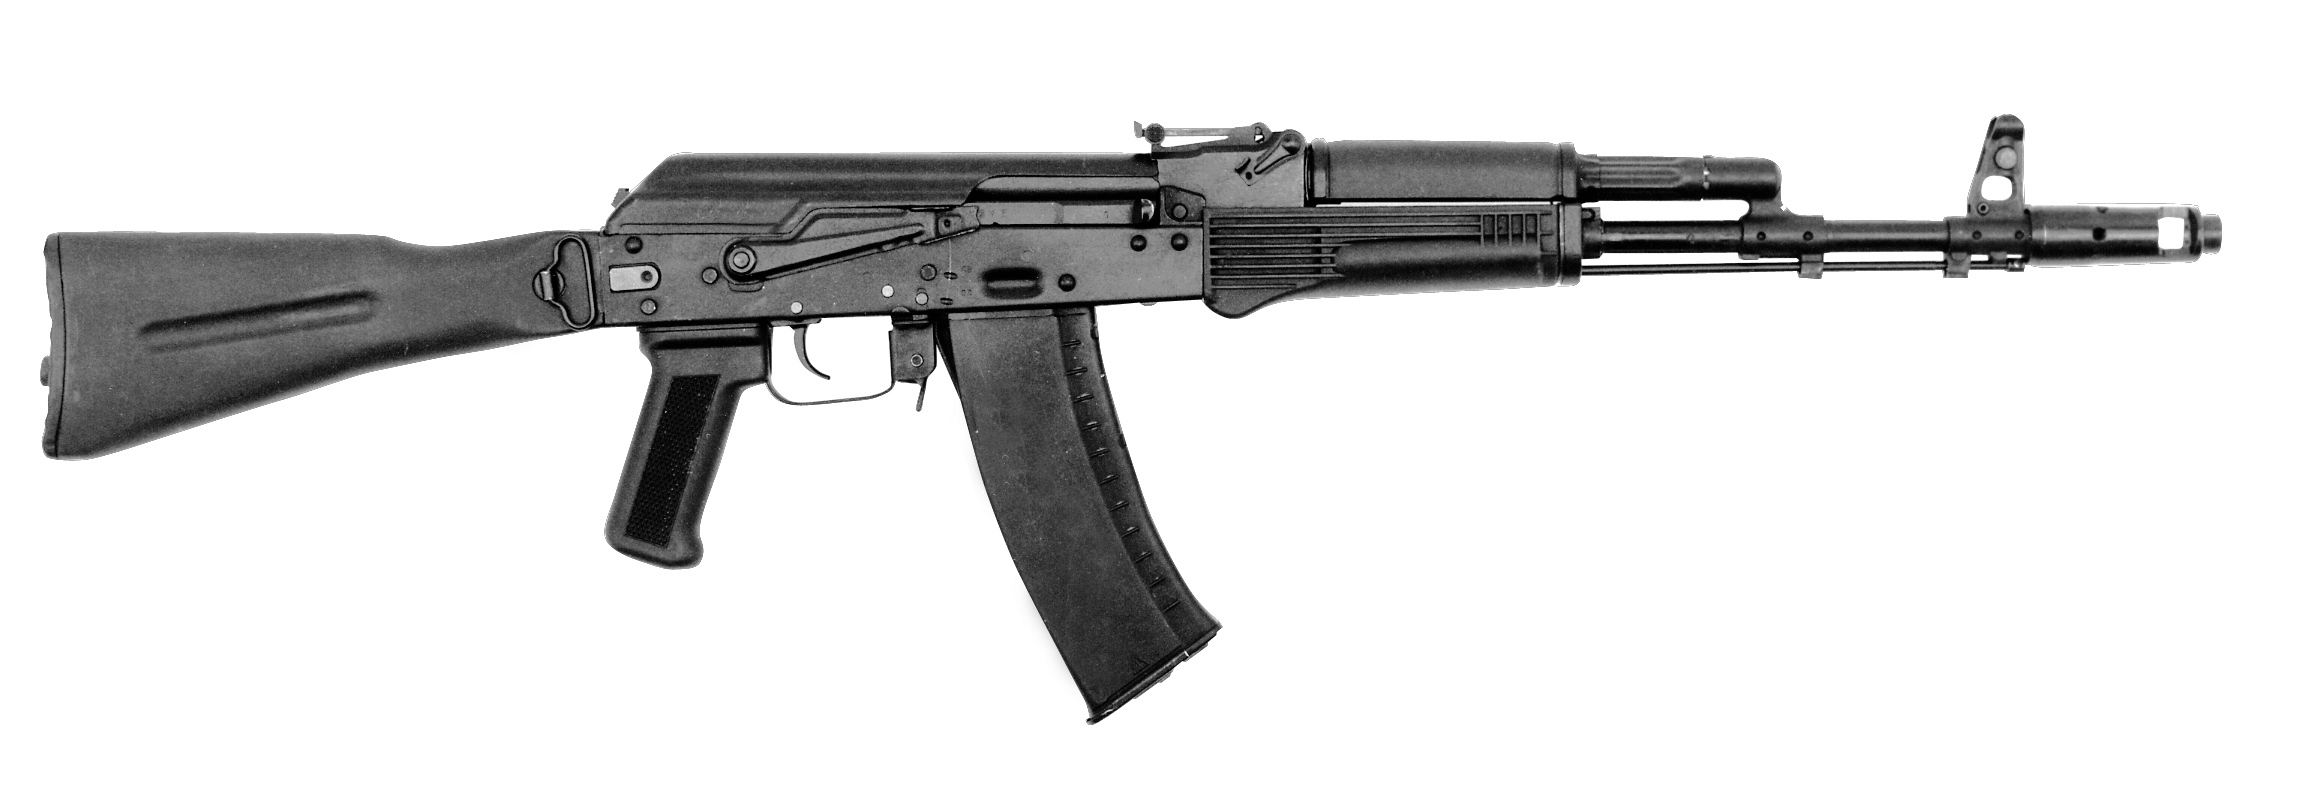 Guns ak-74 HD Wallpaper